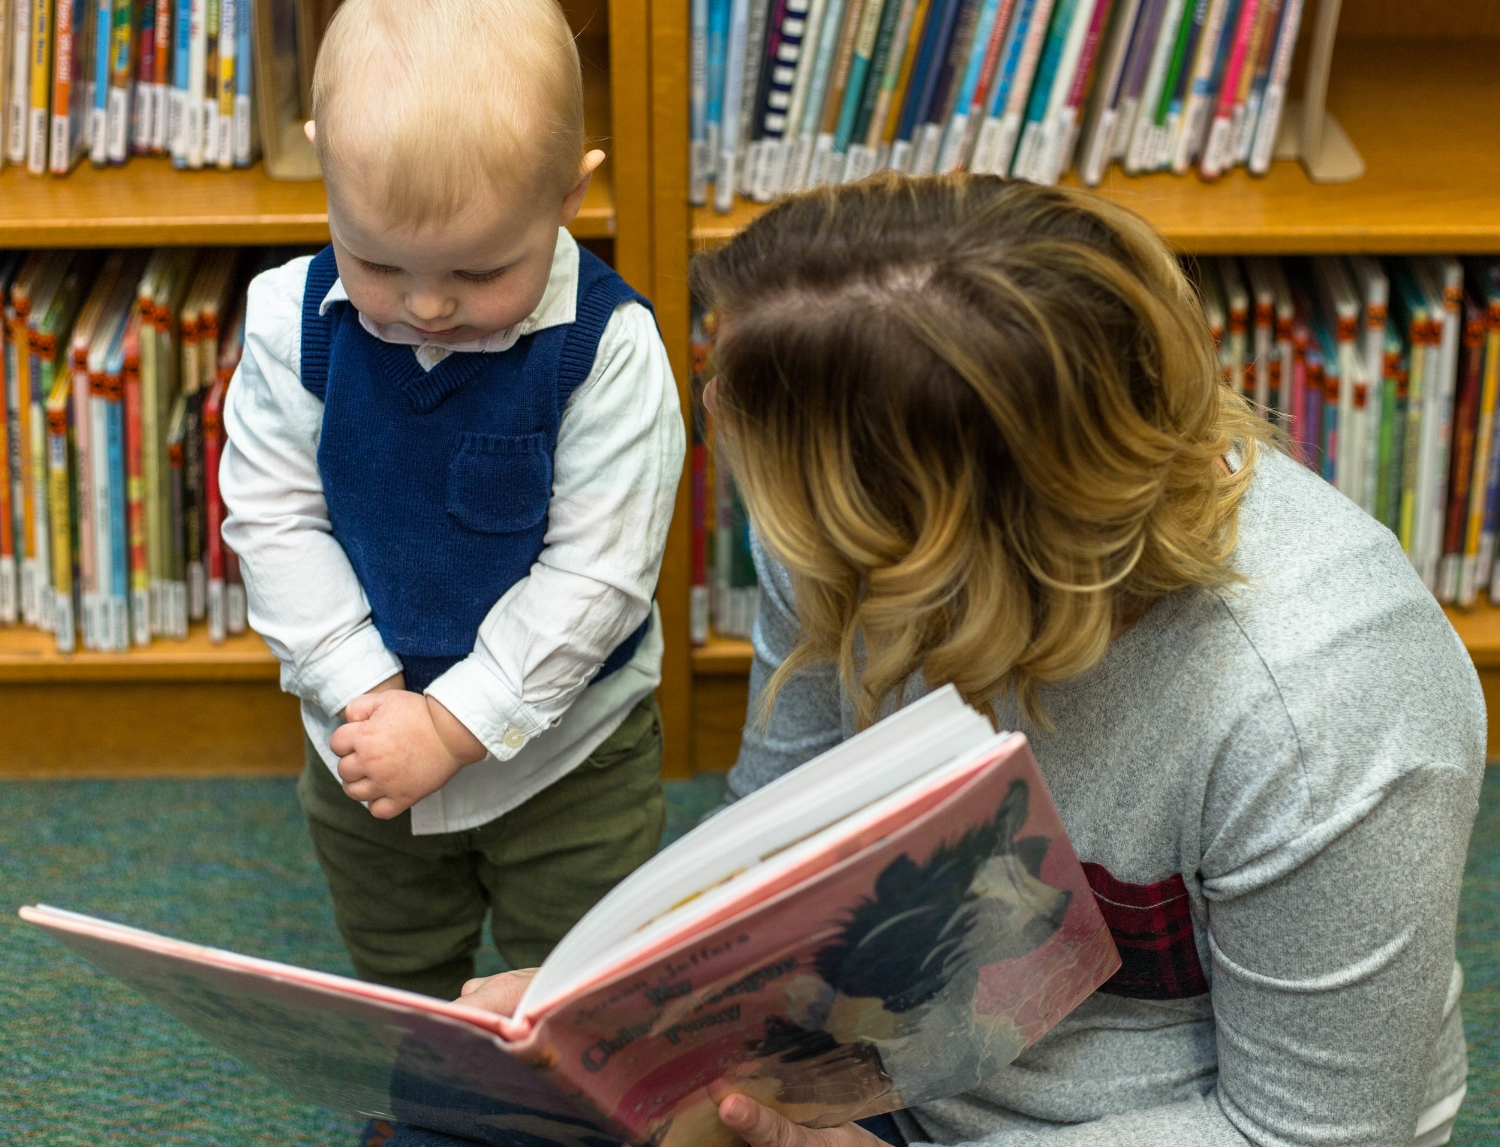 Little boy toddler standing listening to book being read at the library